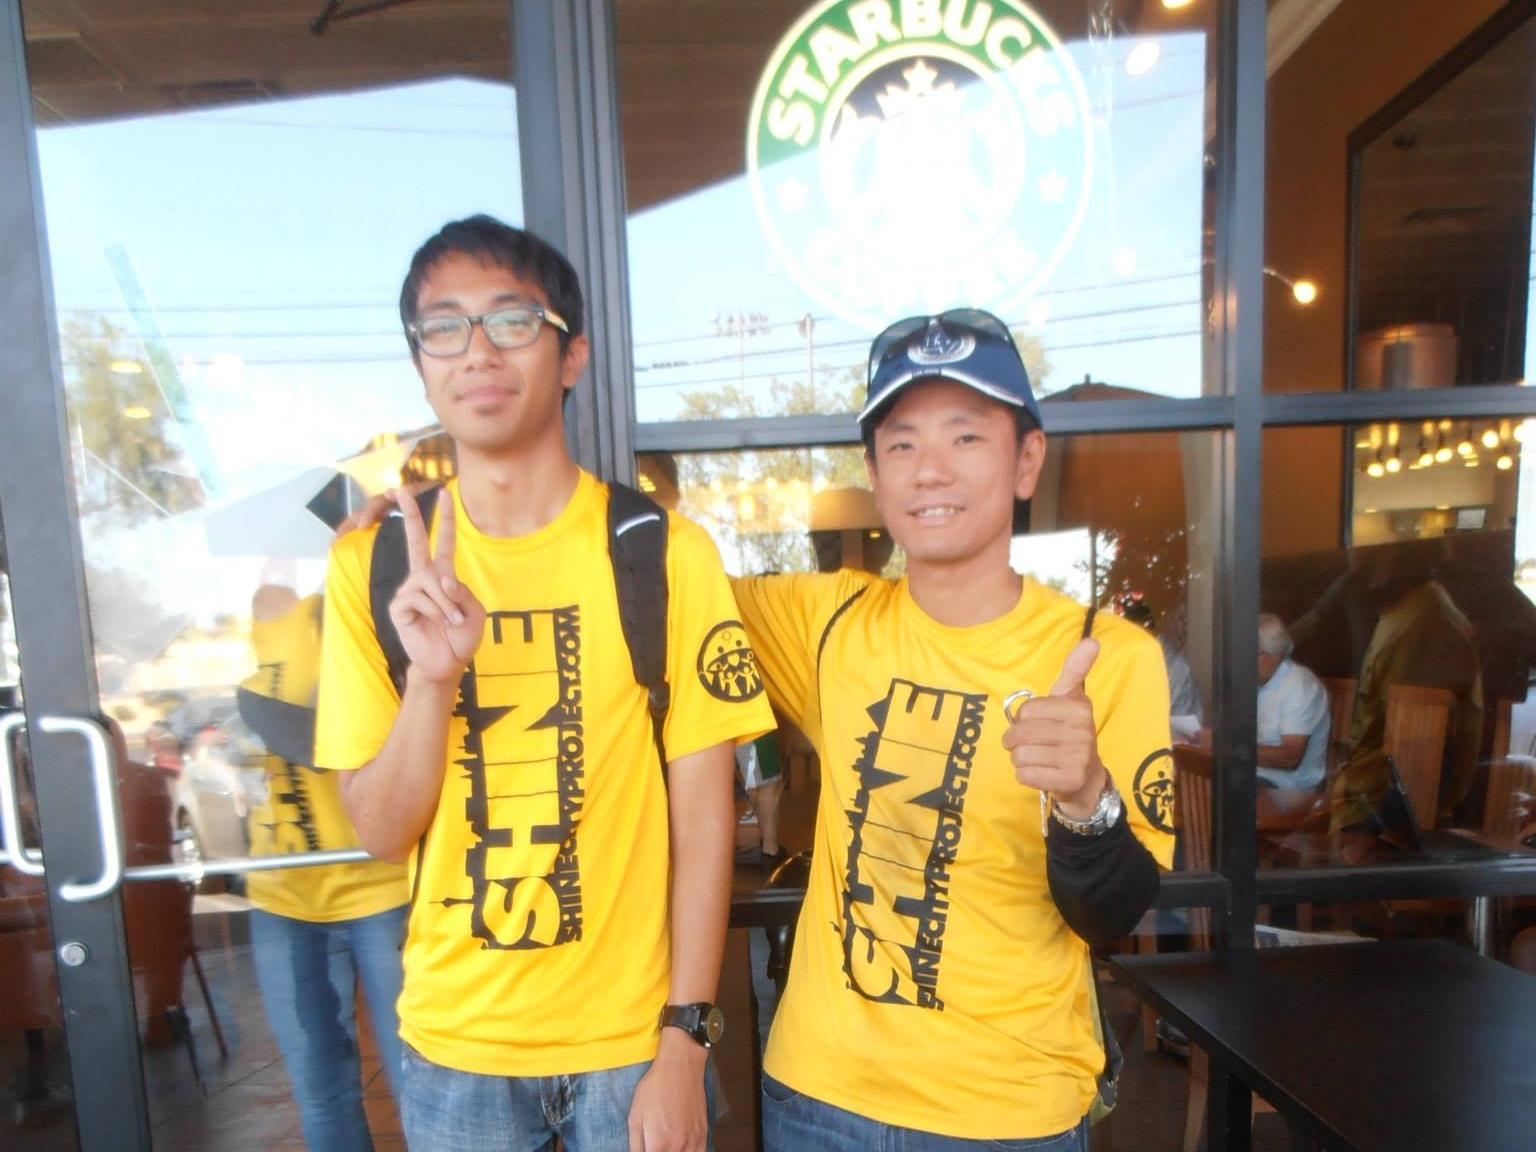 After a clean-up, Jeffrey (left) and Satoshi Inoue (right) take a final photo before Satoshi returns to Japan.